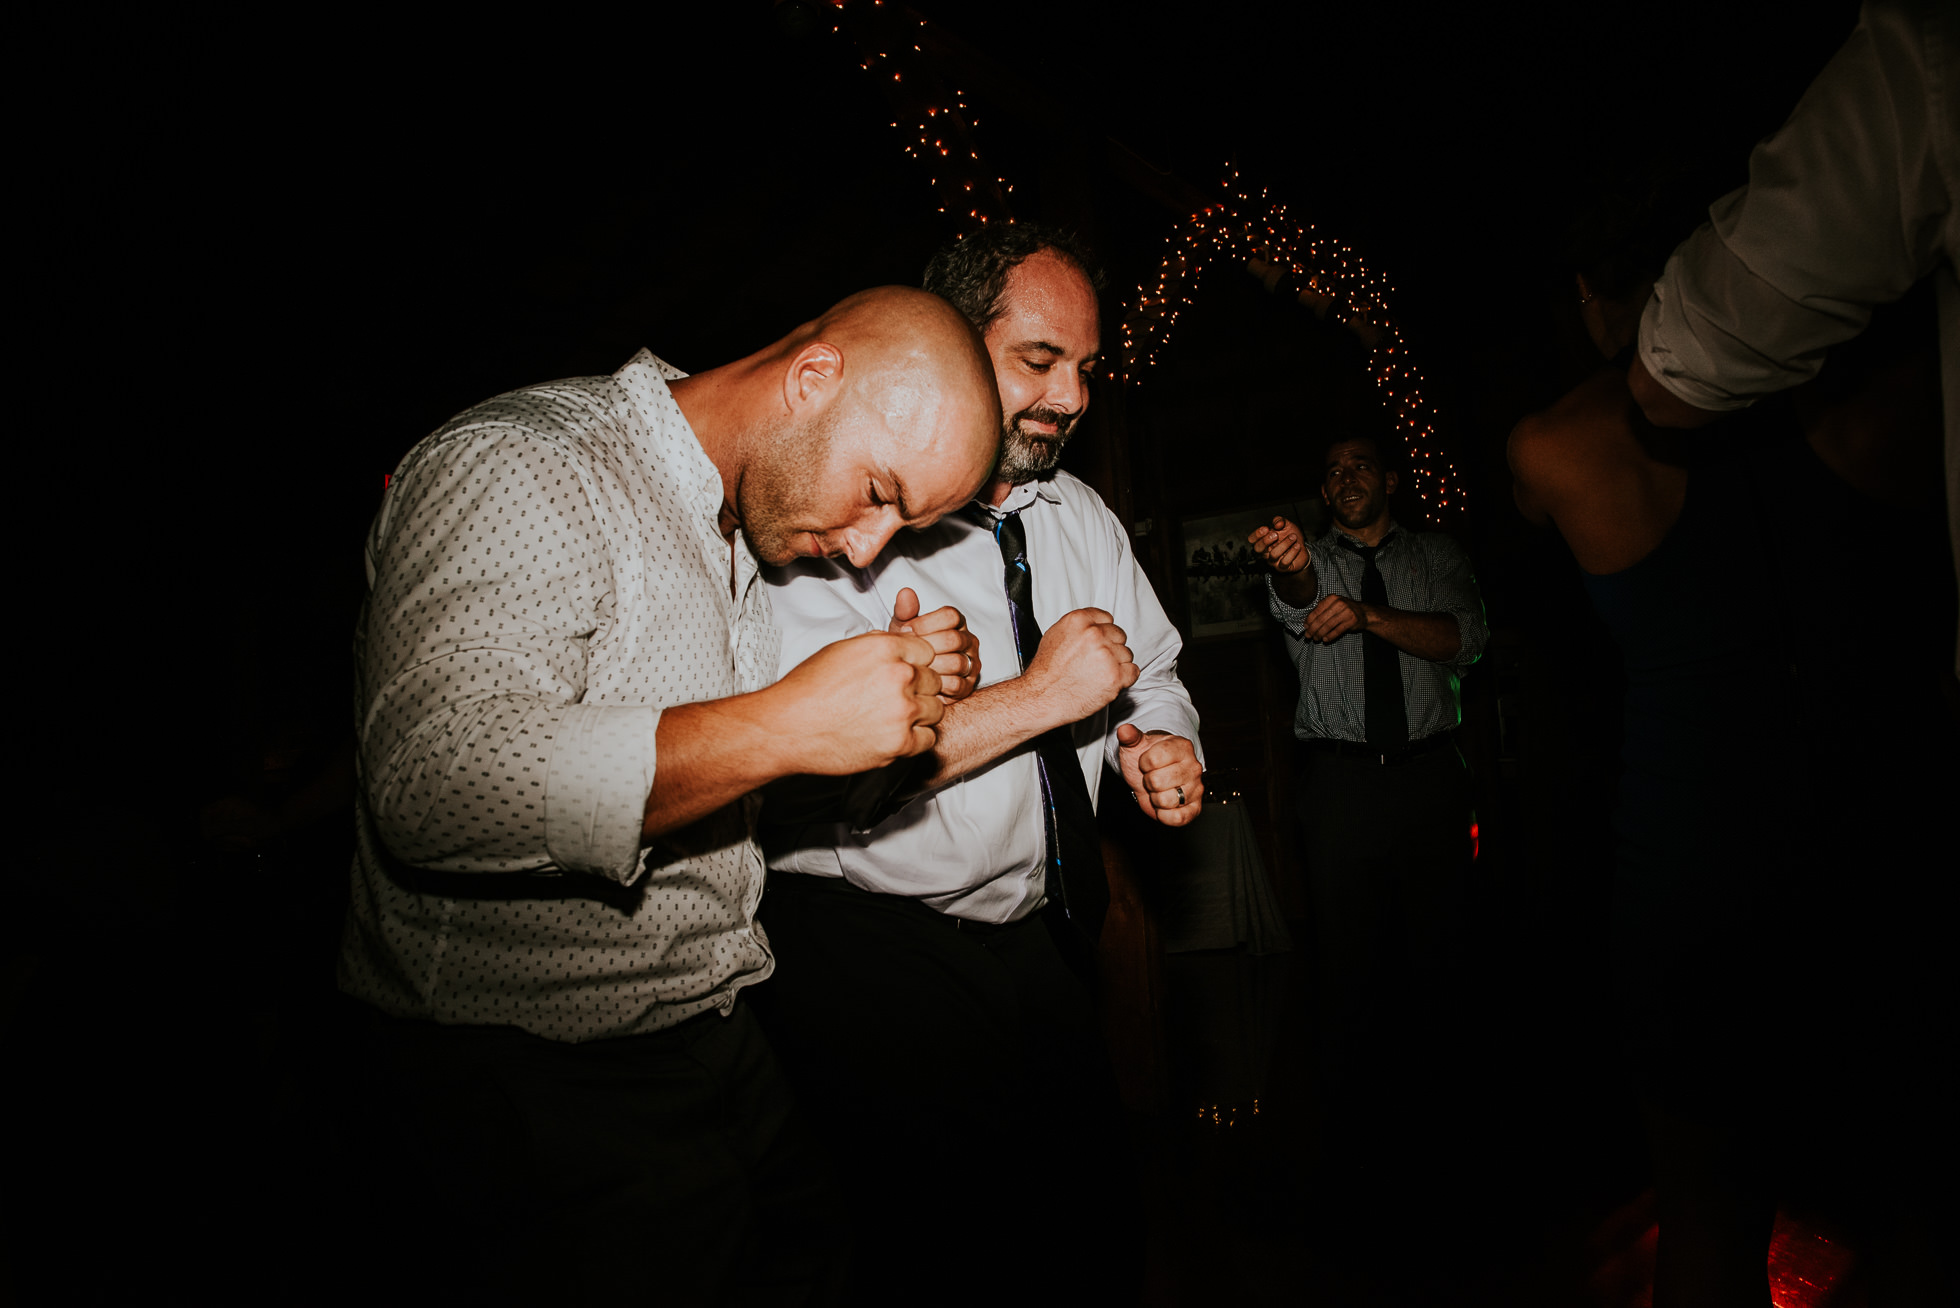 guys dancing at olde tater barn wedding in central bridge, ny photographed by traverse the tides